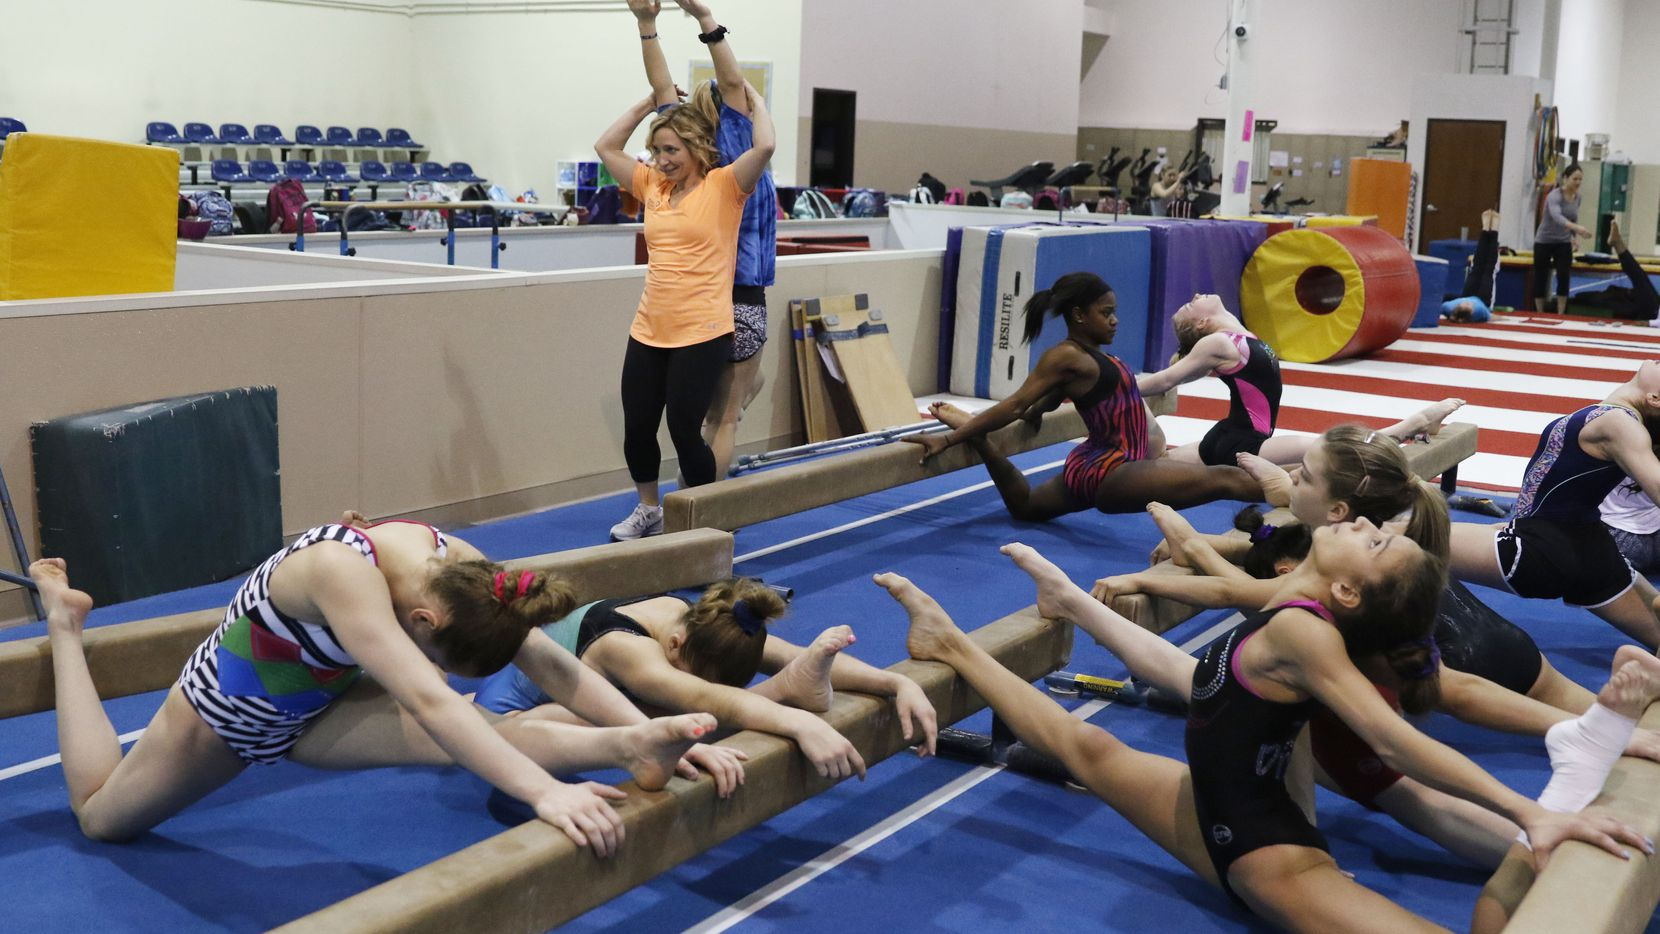 Kim Zmeskal, right, retired artistic gymnast, who was a national champion, world champion, and an Olympic bronze medalist helps one of her gymnast stretch her back at the Texas Dreams Gymnastics in Coppell, Texas, Wednesday, Feb. 28, 2018. (David Woo/The Dallas Morning News)